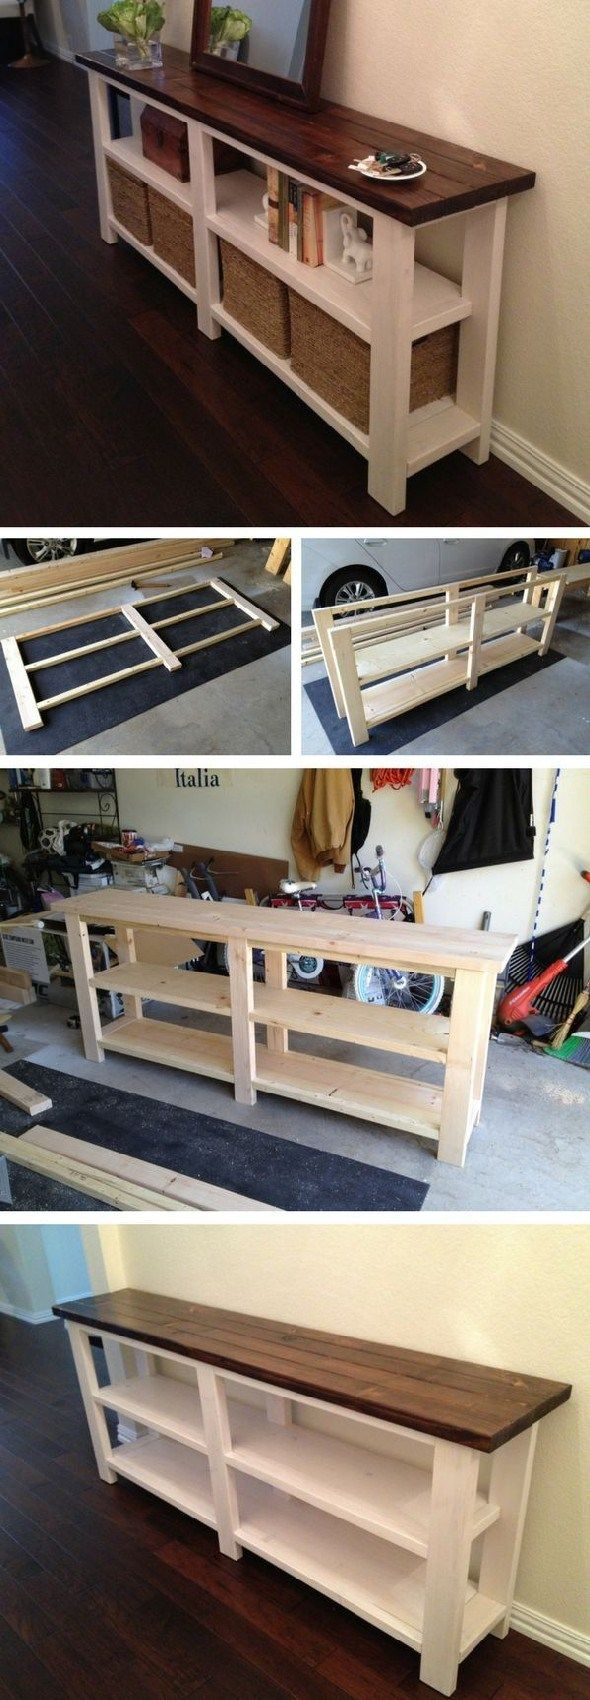 Best Amazing DIY Furniture Ideas to Steal (32) images